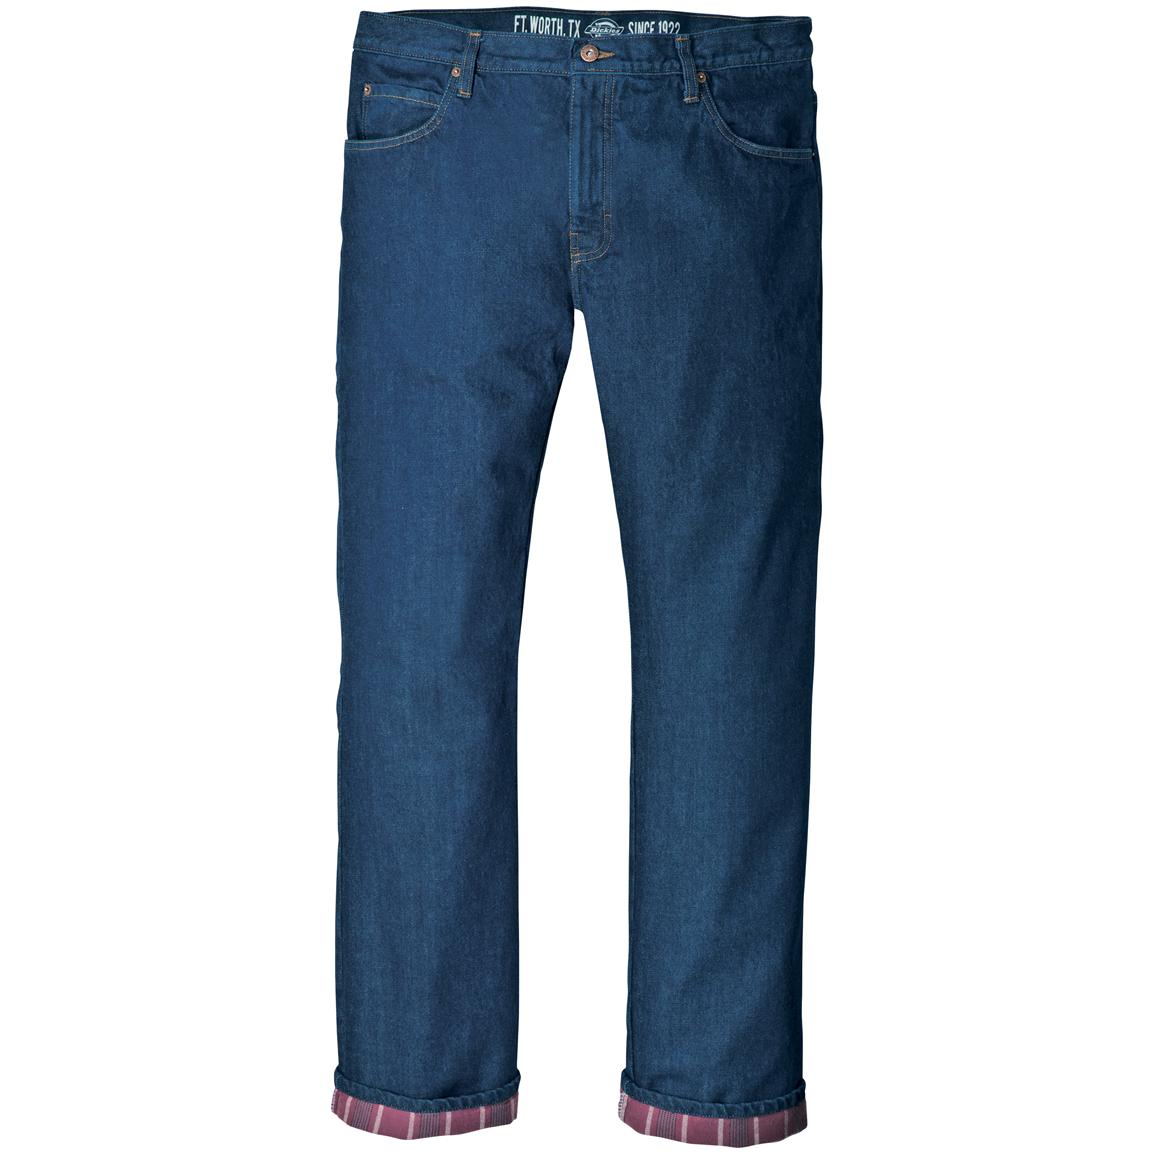 Men's Dickies Relaxed Straight Fit Flannel-lined Jeans, Stonewashed Indigo